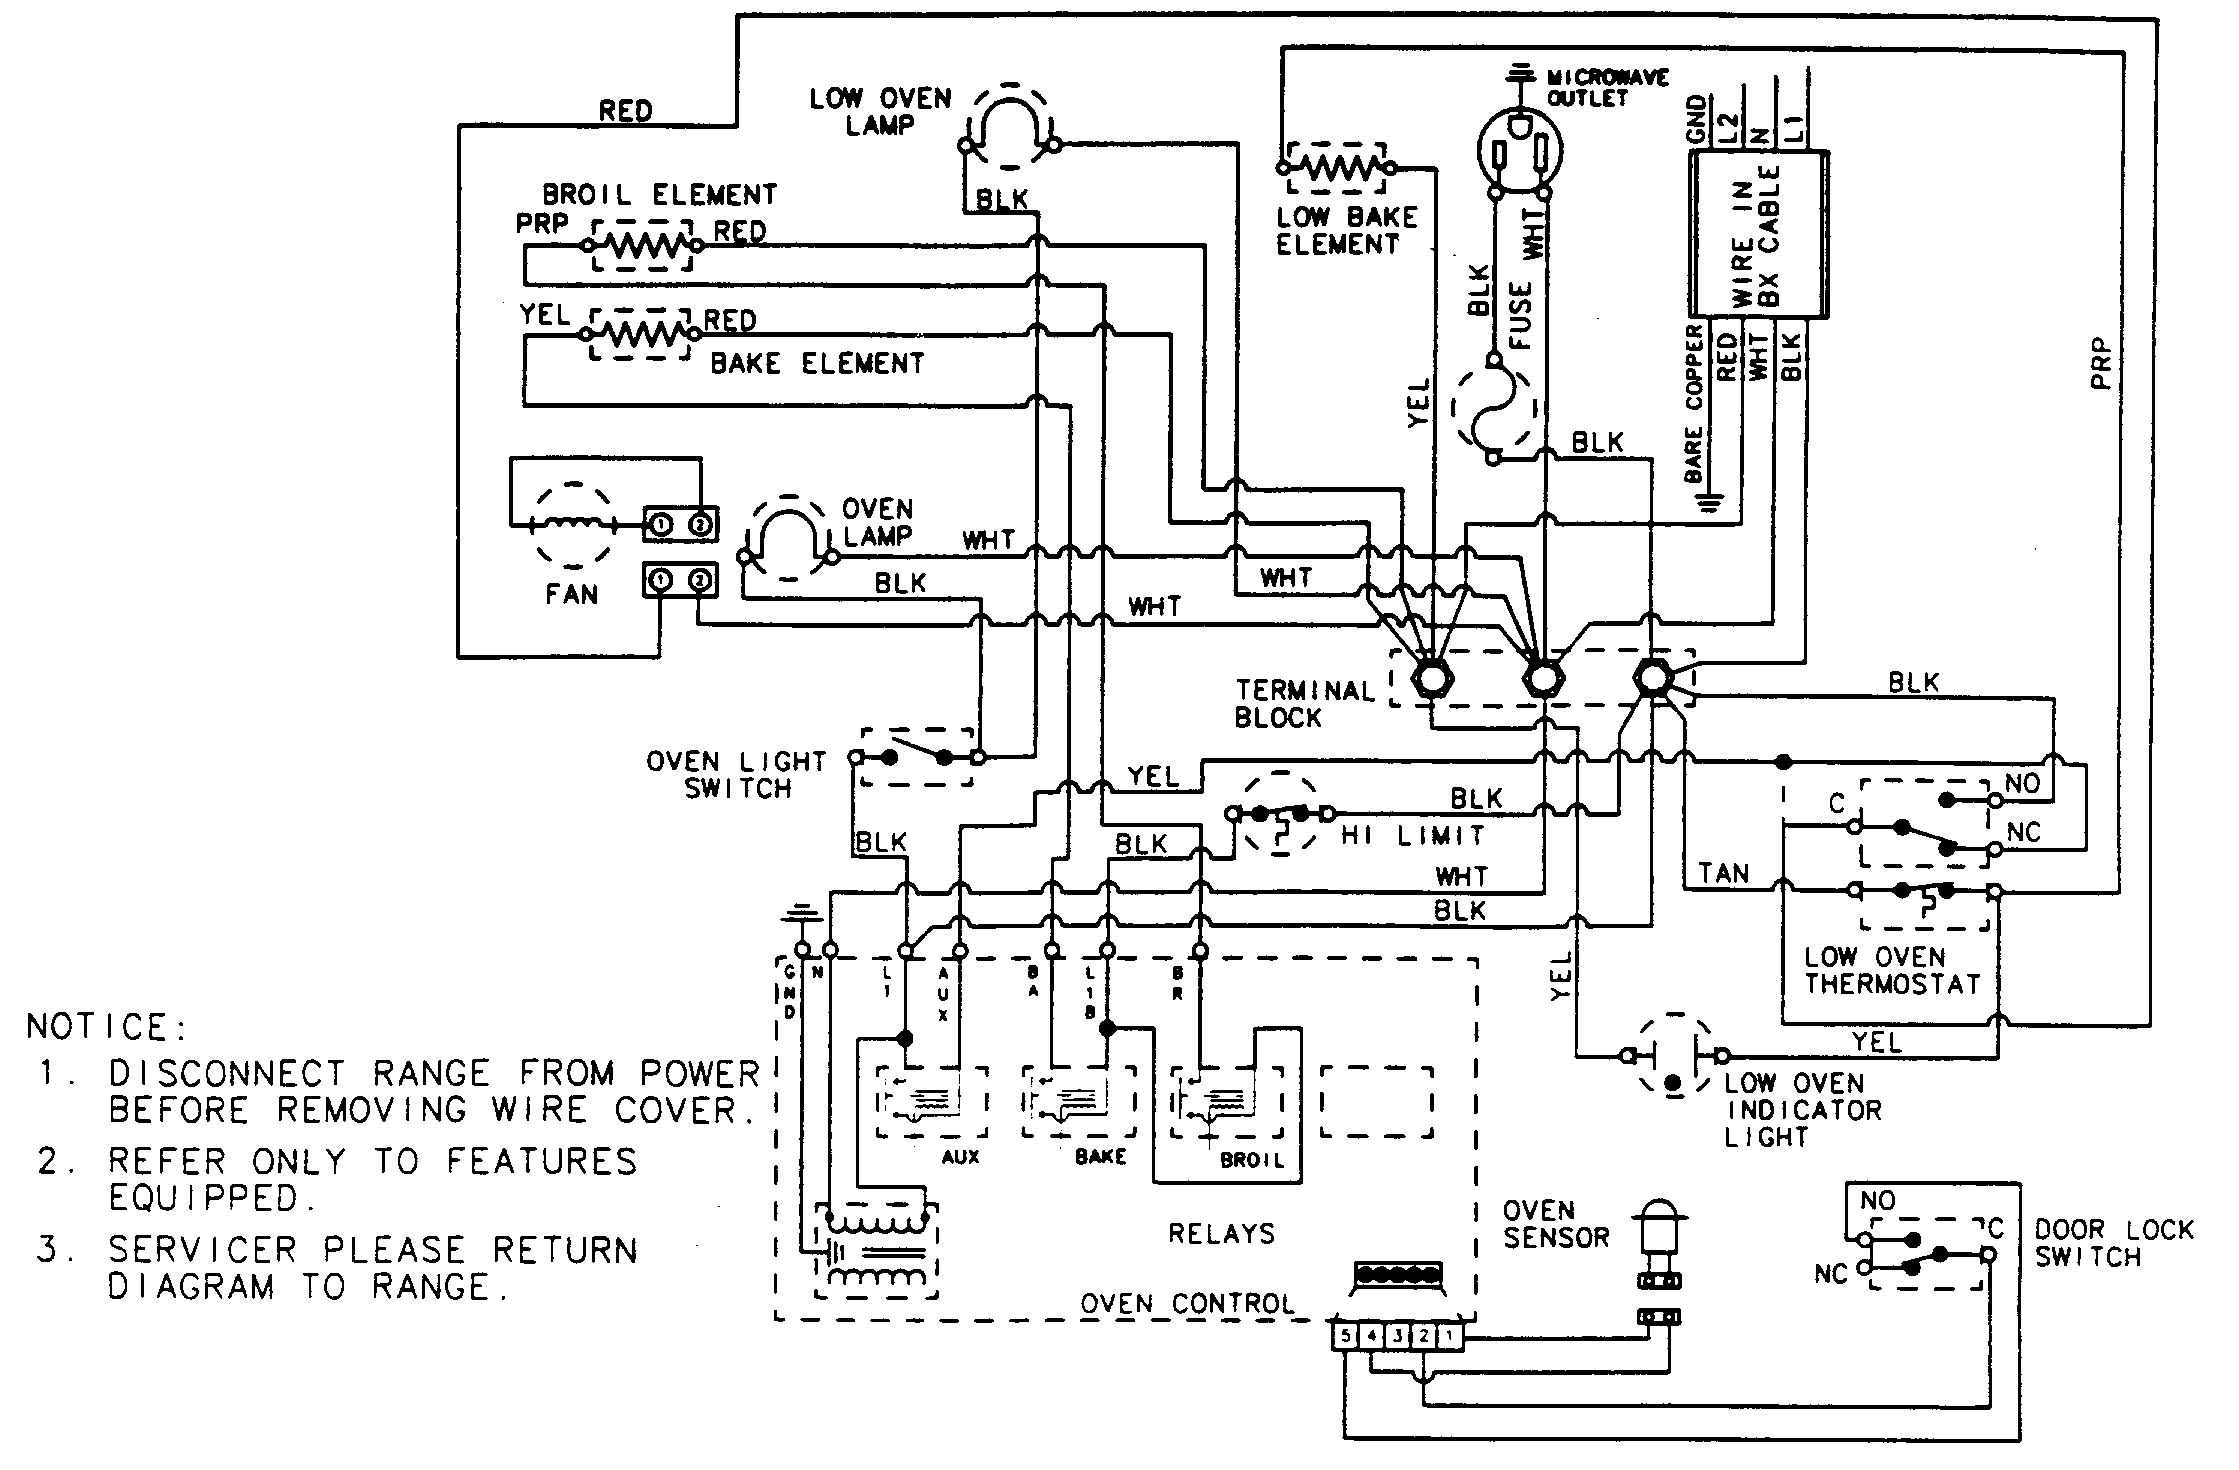 wiring information parts oven wiring diagram electric oven wiring diagram \u2022 wiring diagrams hotpoint oven wiring diagram at gsmportal.co